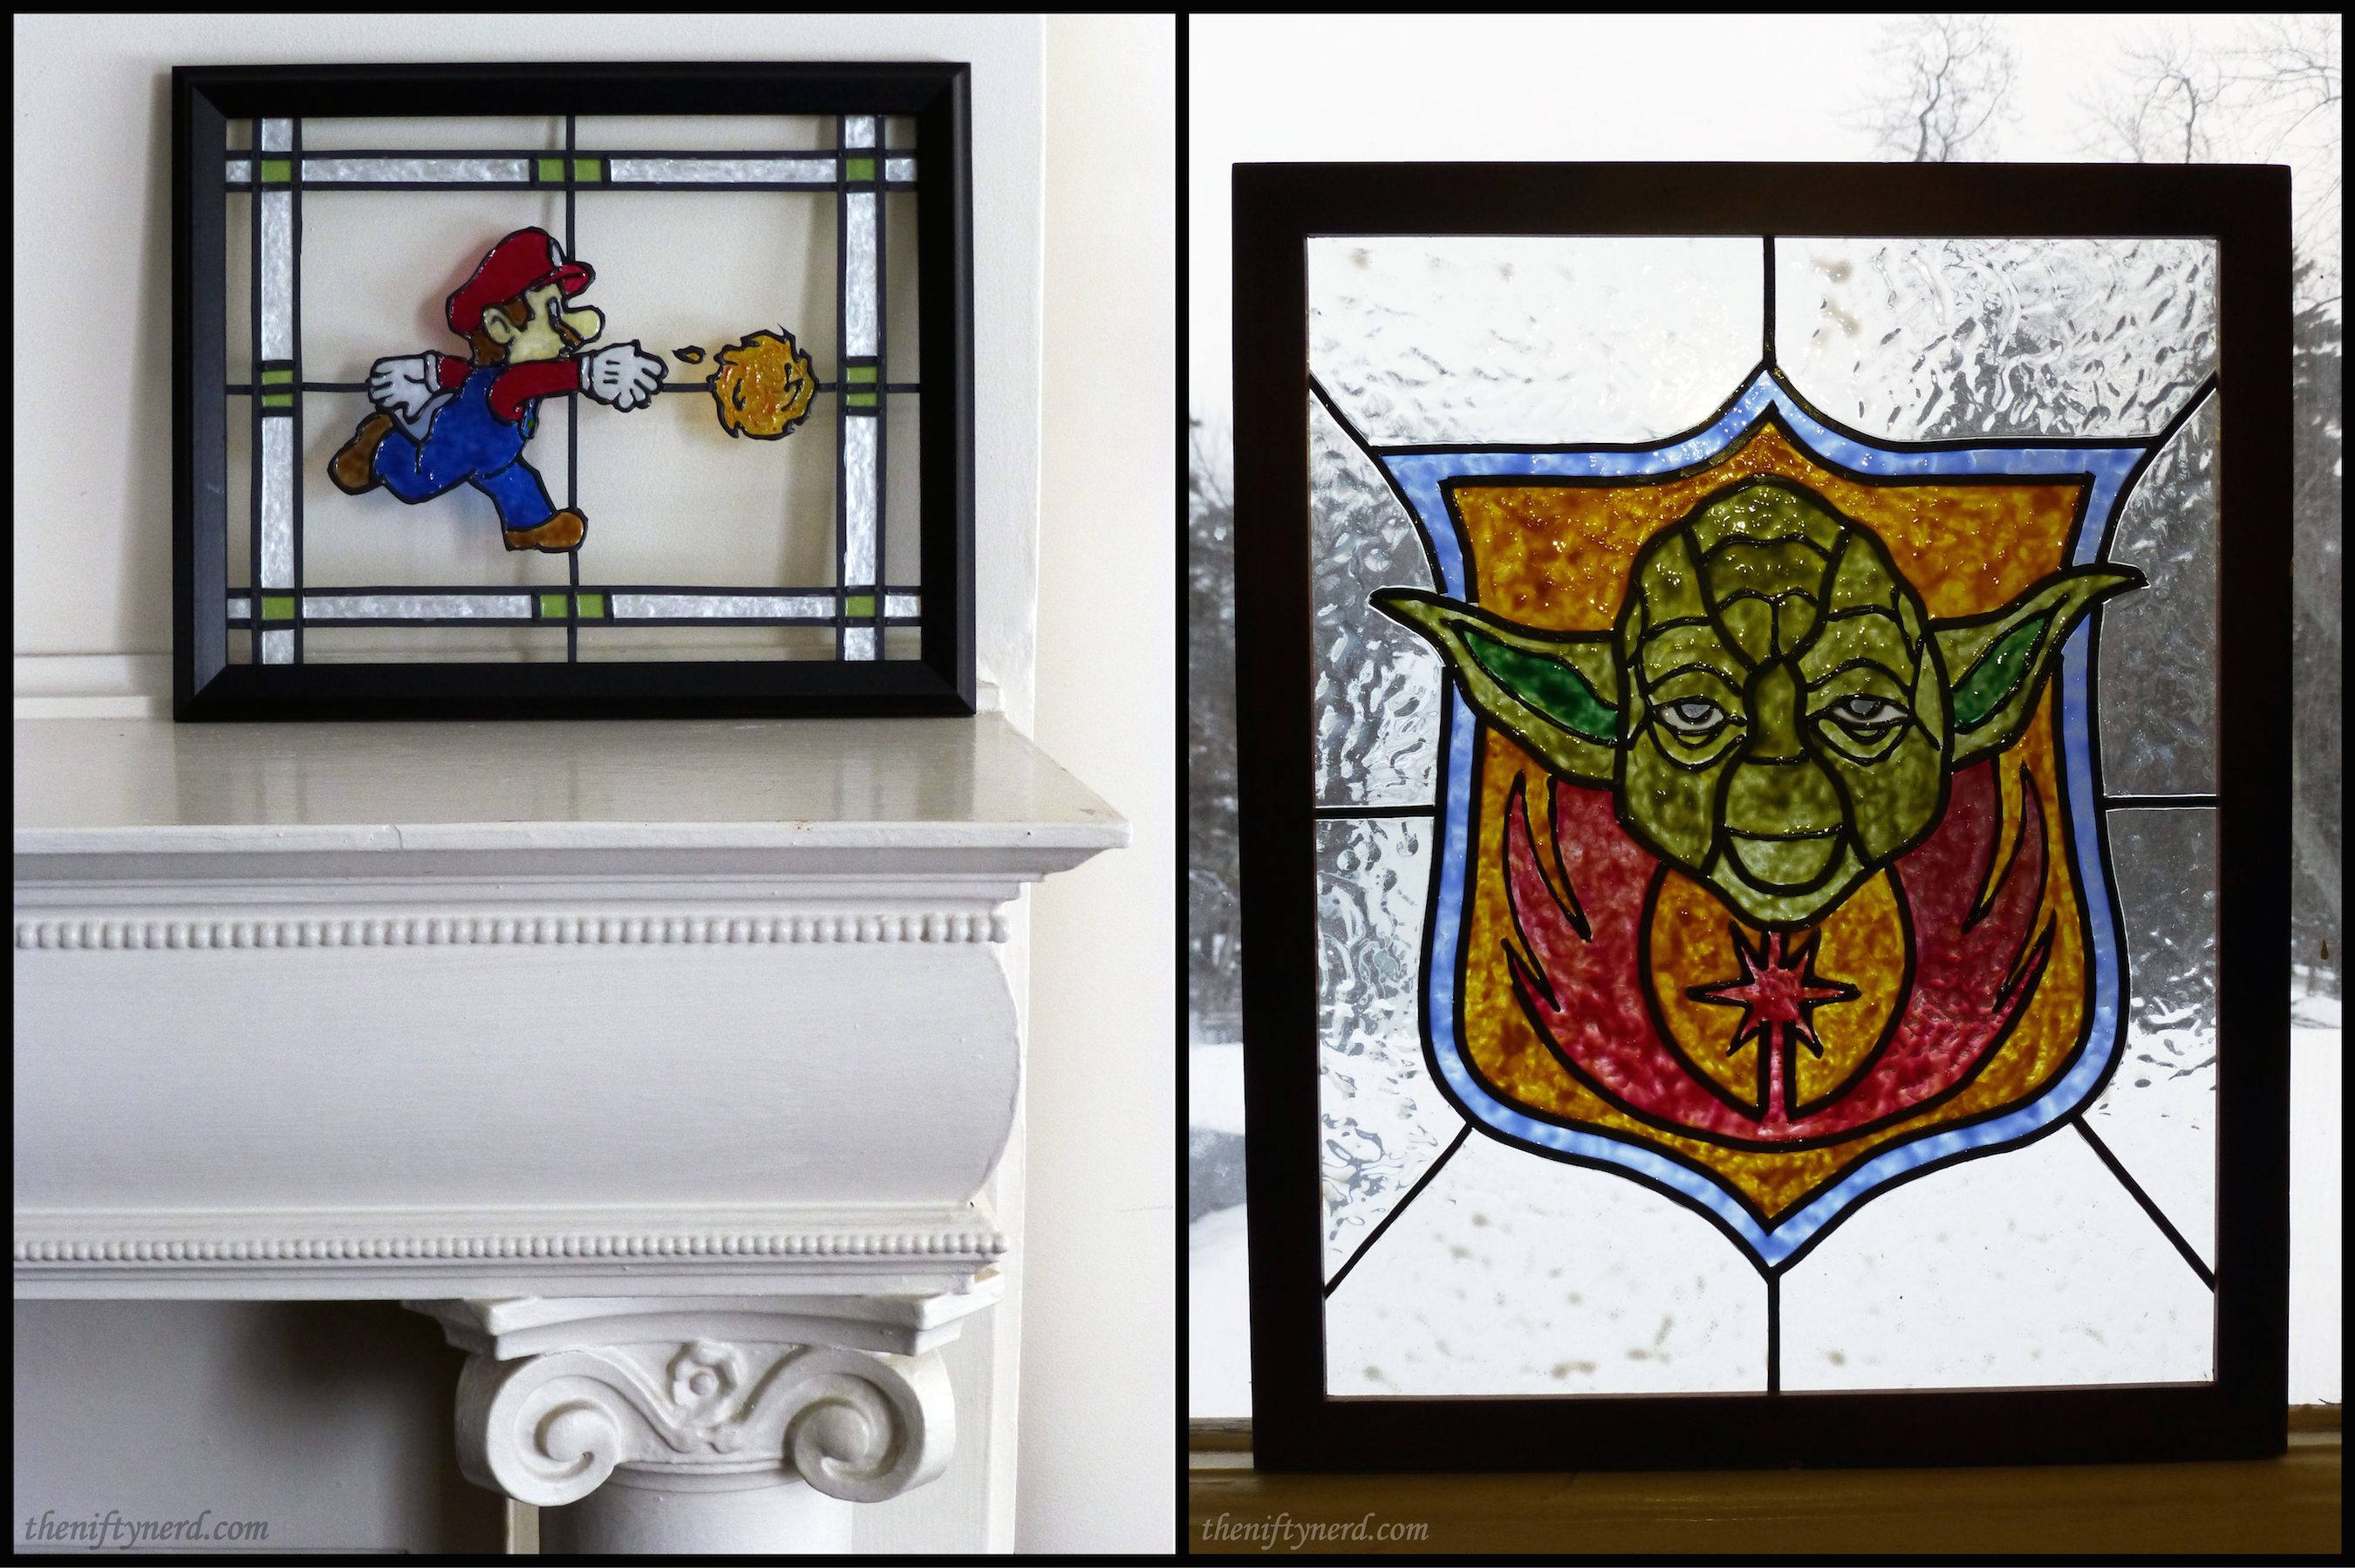 Mario and Yoda stained glass